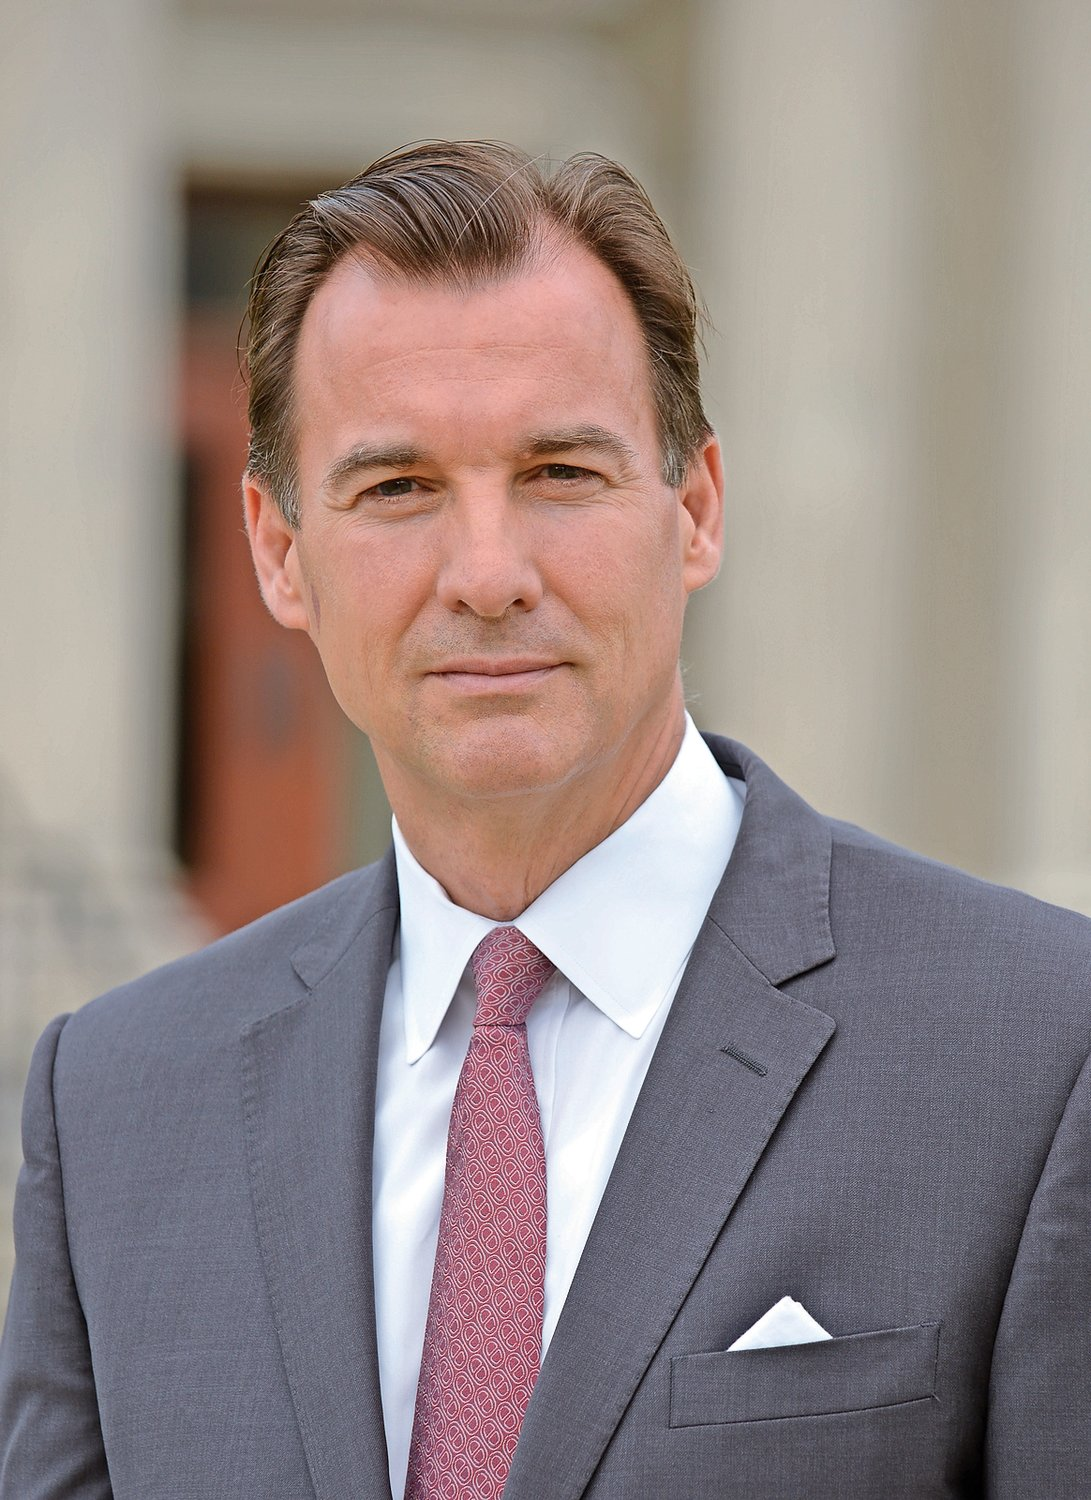 Suozzi said that fees paid by DACA and TPS recipients could pay for security.